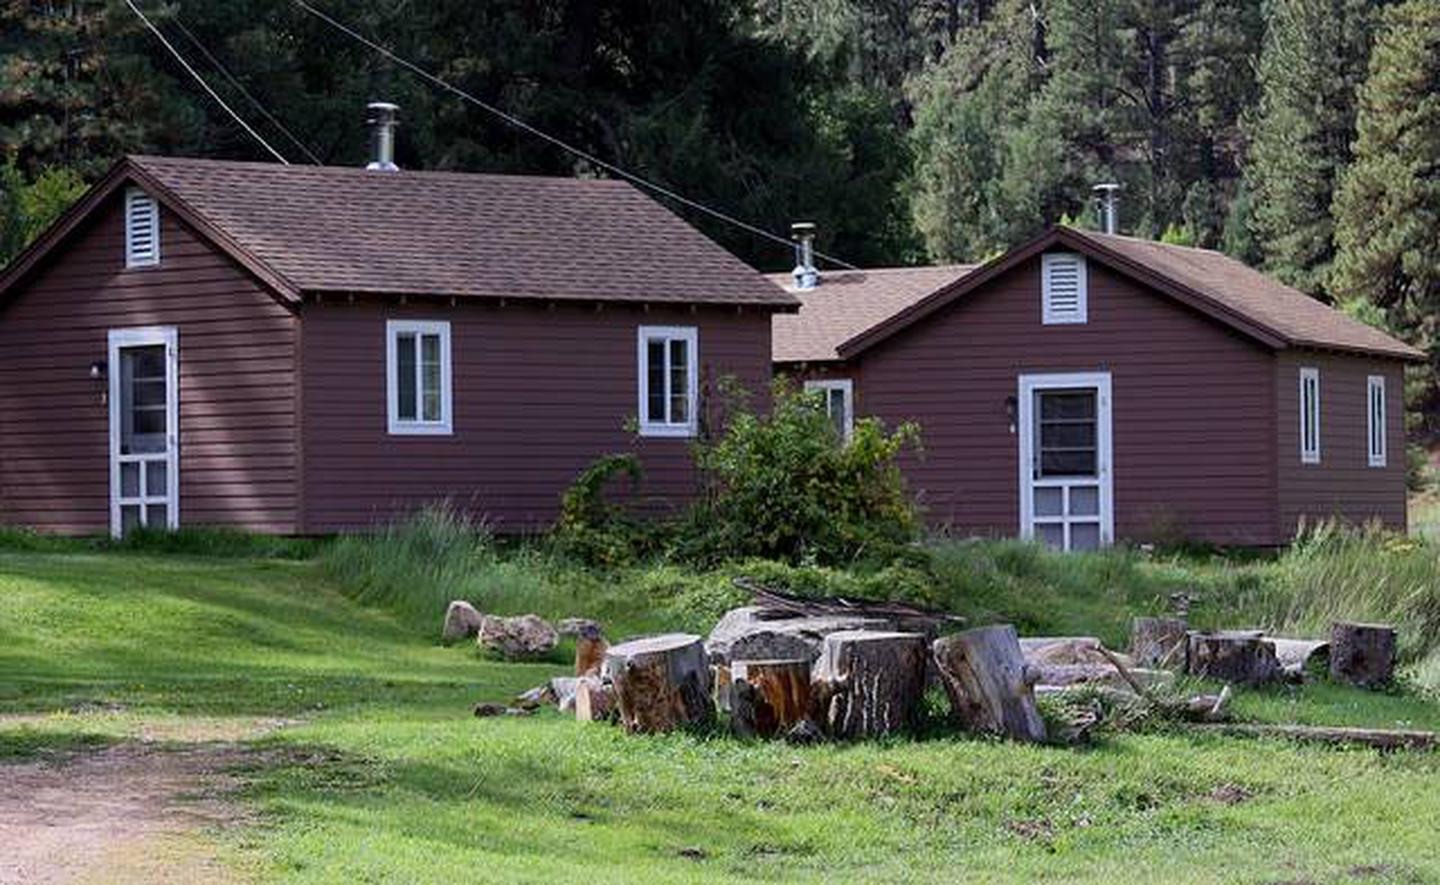 Rental CabinsCabins are close to one another and easy walking distance to bathhouse and kitchen